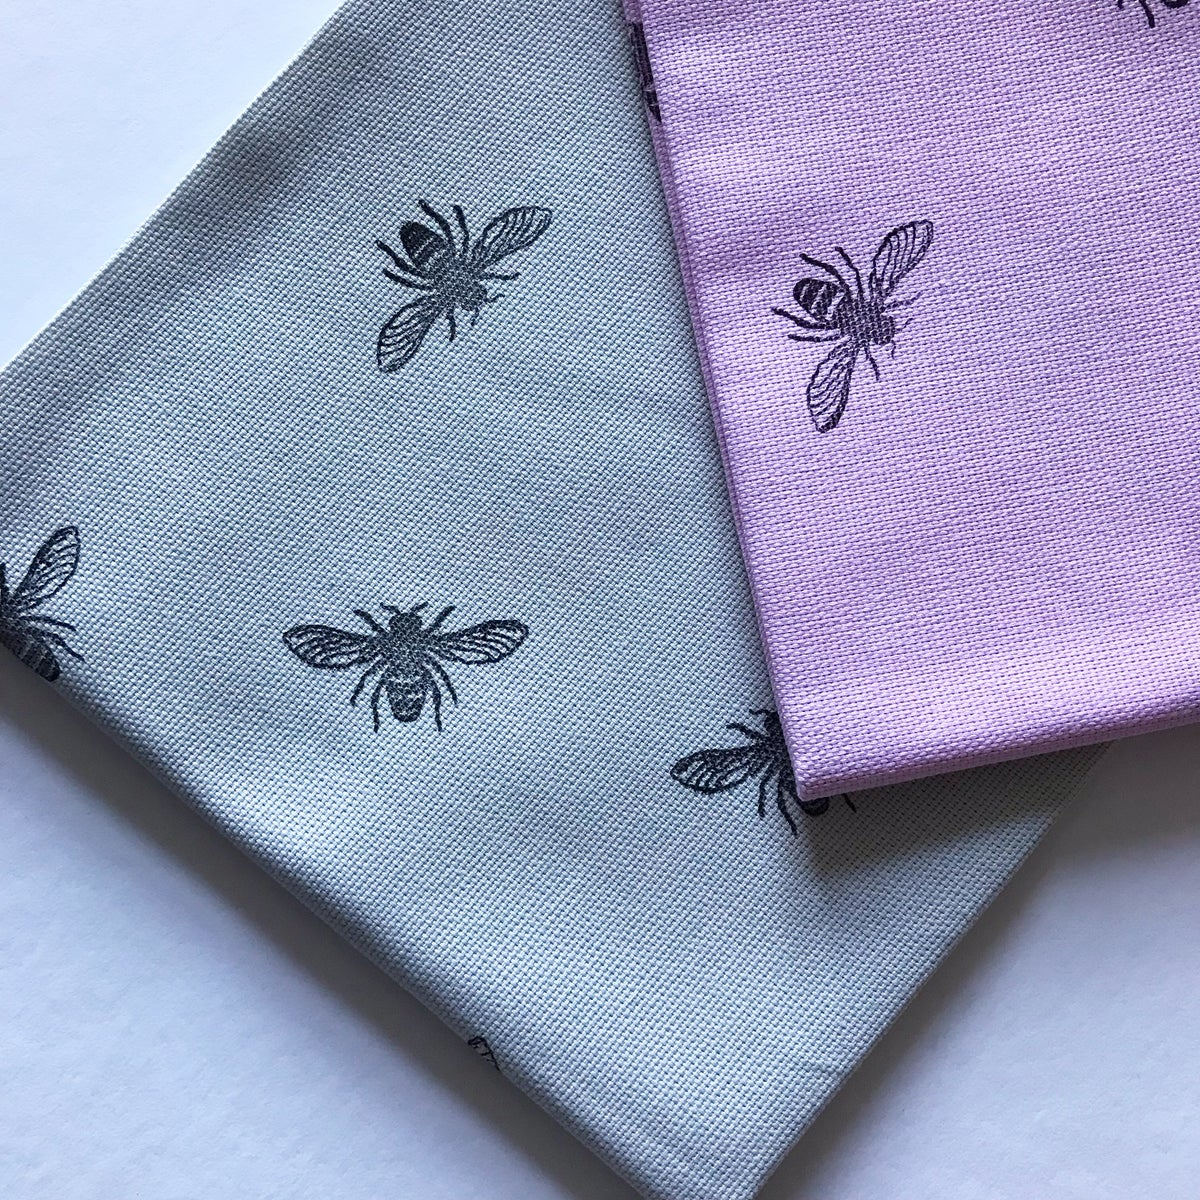 Image of MANCHESTER BEE TEA TOWEL 2 PACK IN PINK + GREY